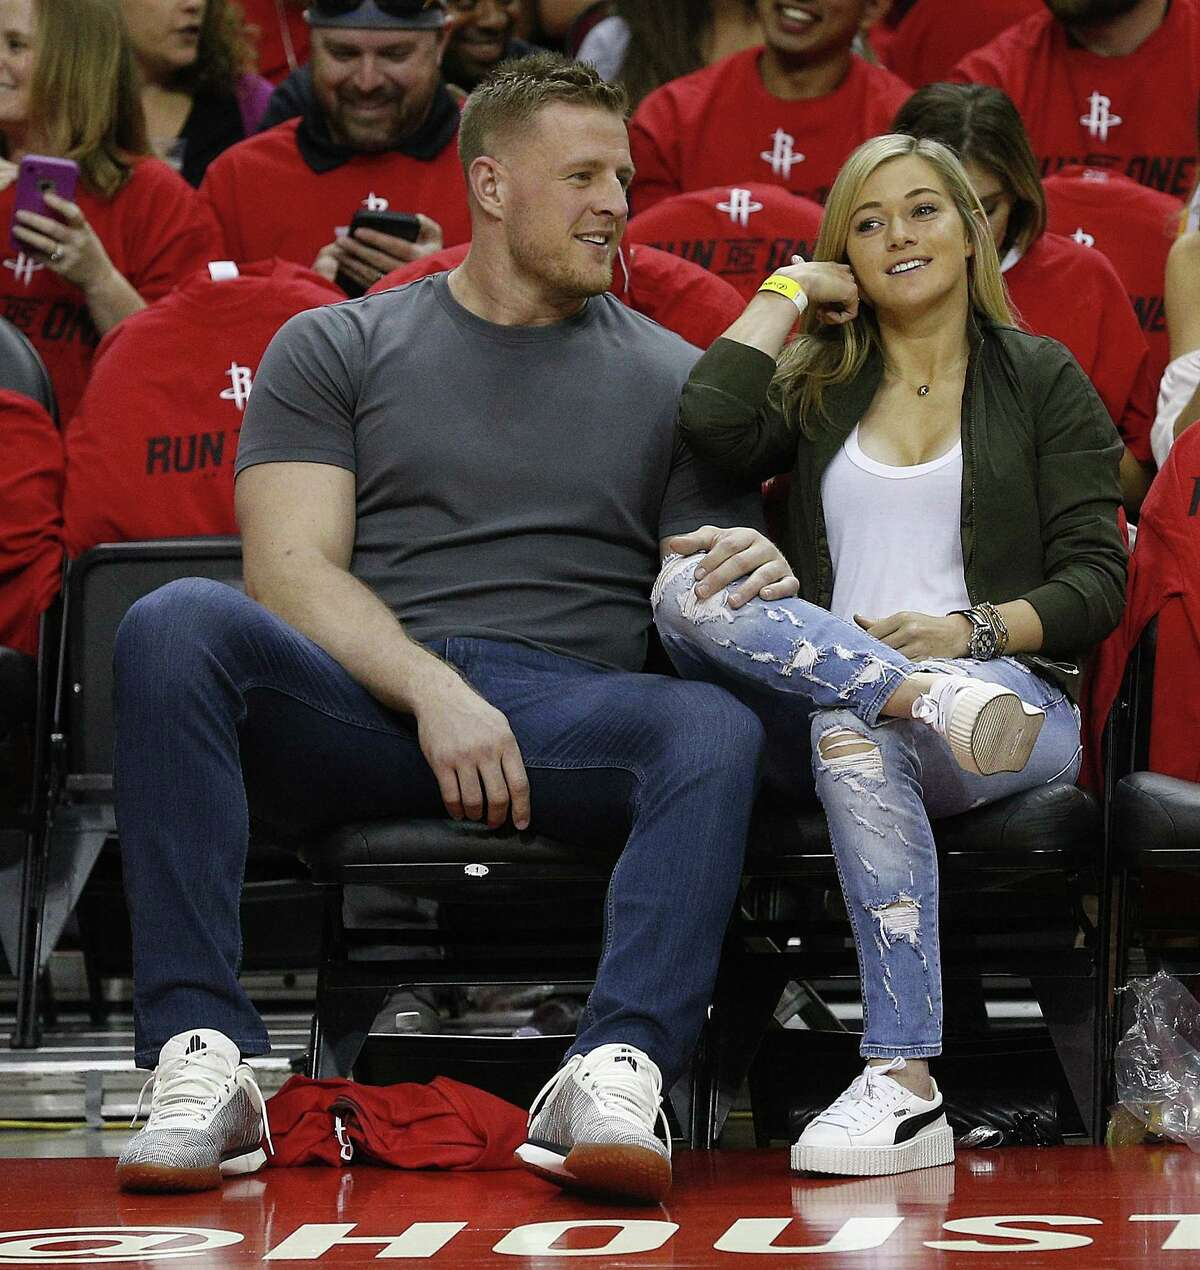 HOUSTON, TX - APRIL 16: JJ. Watt of the Houston Texans and girlfriend Kealia Ohai courtside during Game One of the first round of the Western Conference 2017 NBA Playoffs at Toyota Center on April 16, 2017 in Houston, Texas. NOTE TO USER: User expressly acknowledges and agrees that, by downloading and/or using this photograph, user is consenting to the terms and conditions of the Getty Images License Agreement.